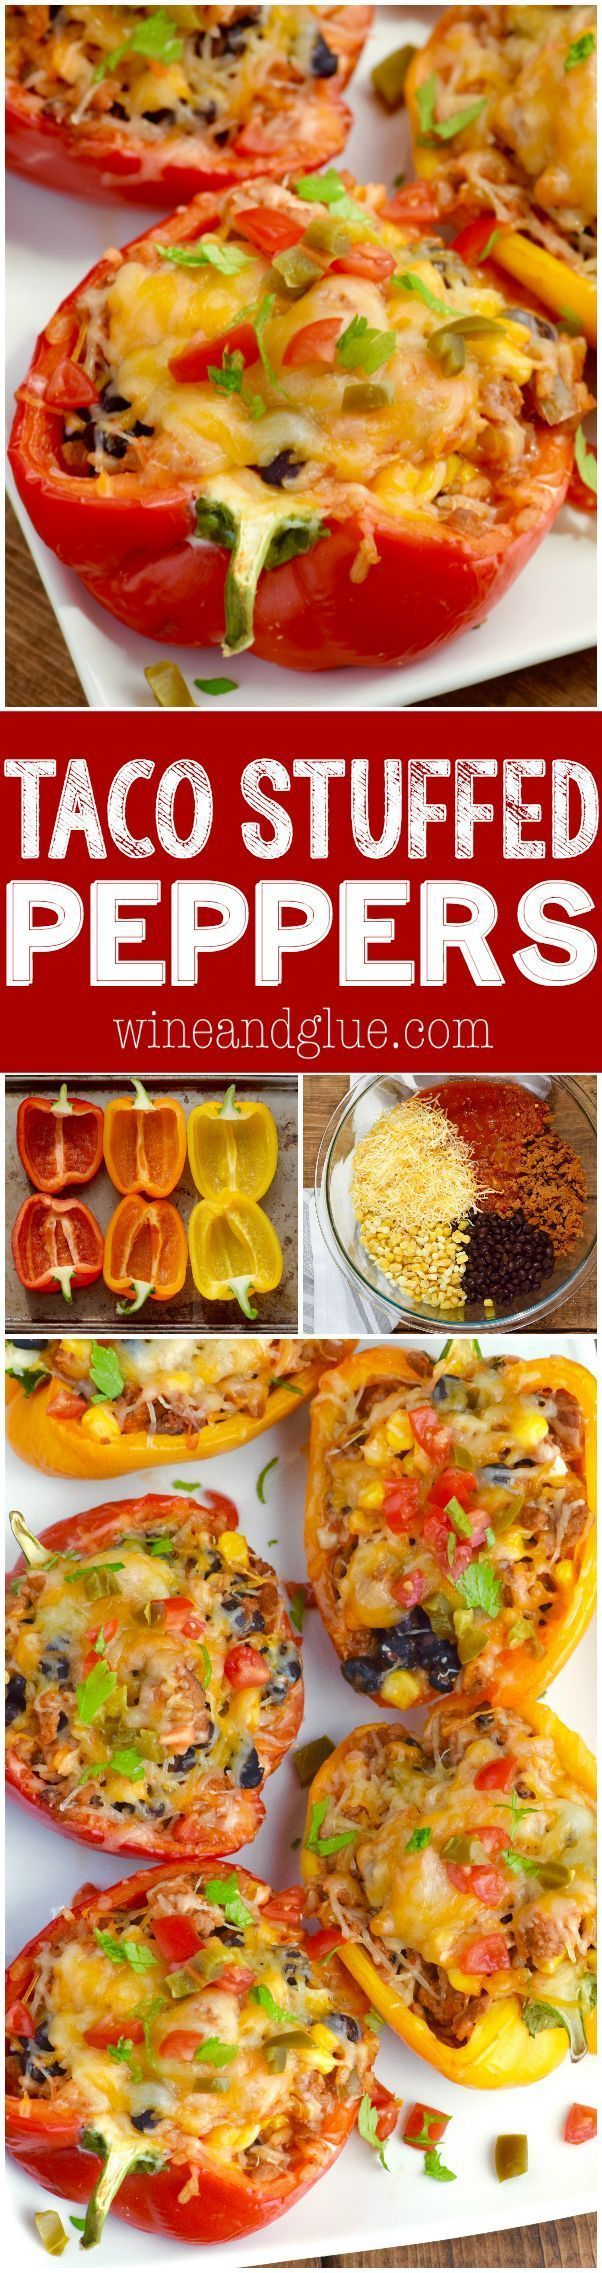 These Taco Stuffed Peppers are such an easy weeknight dinner that are packed…